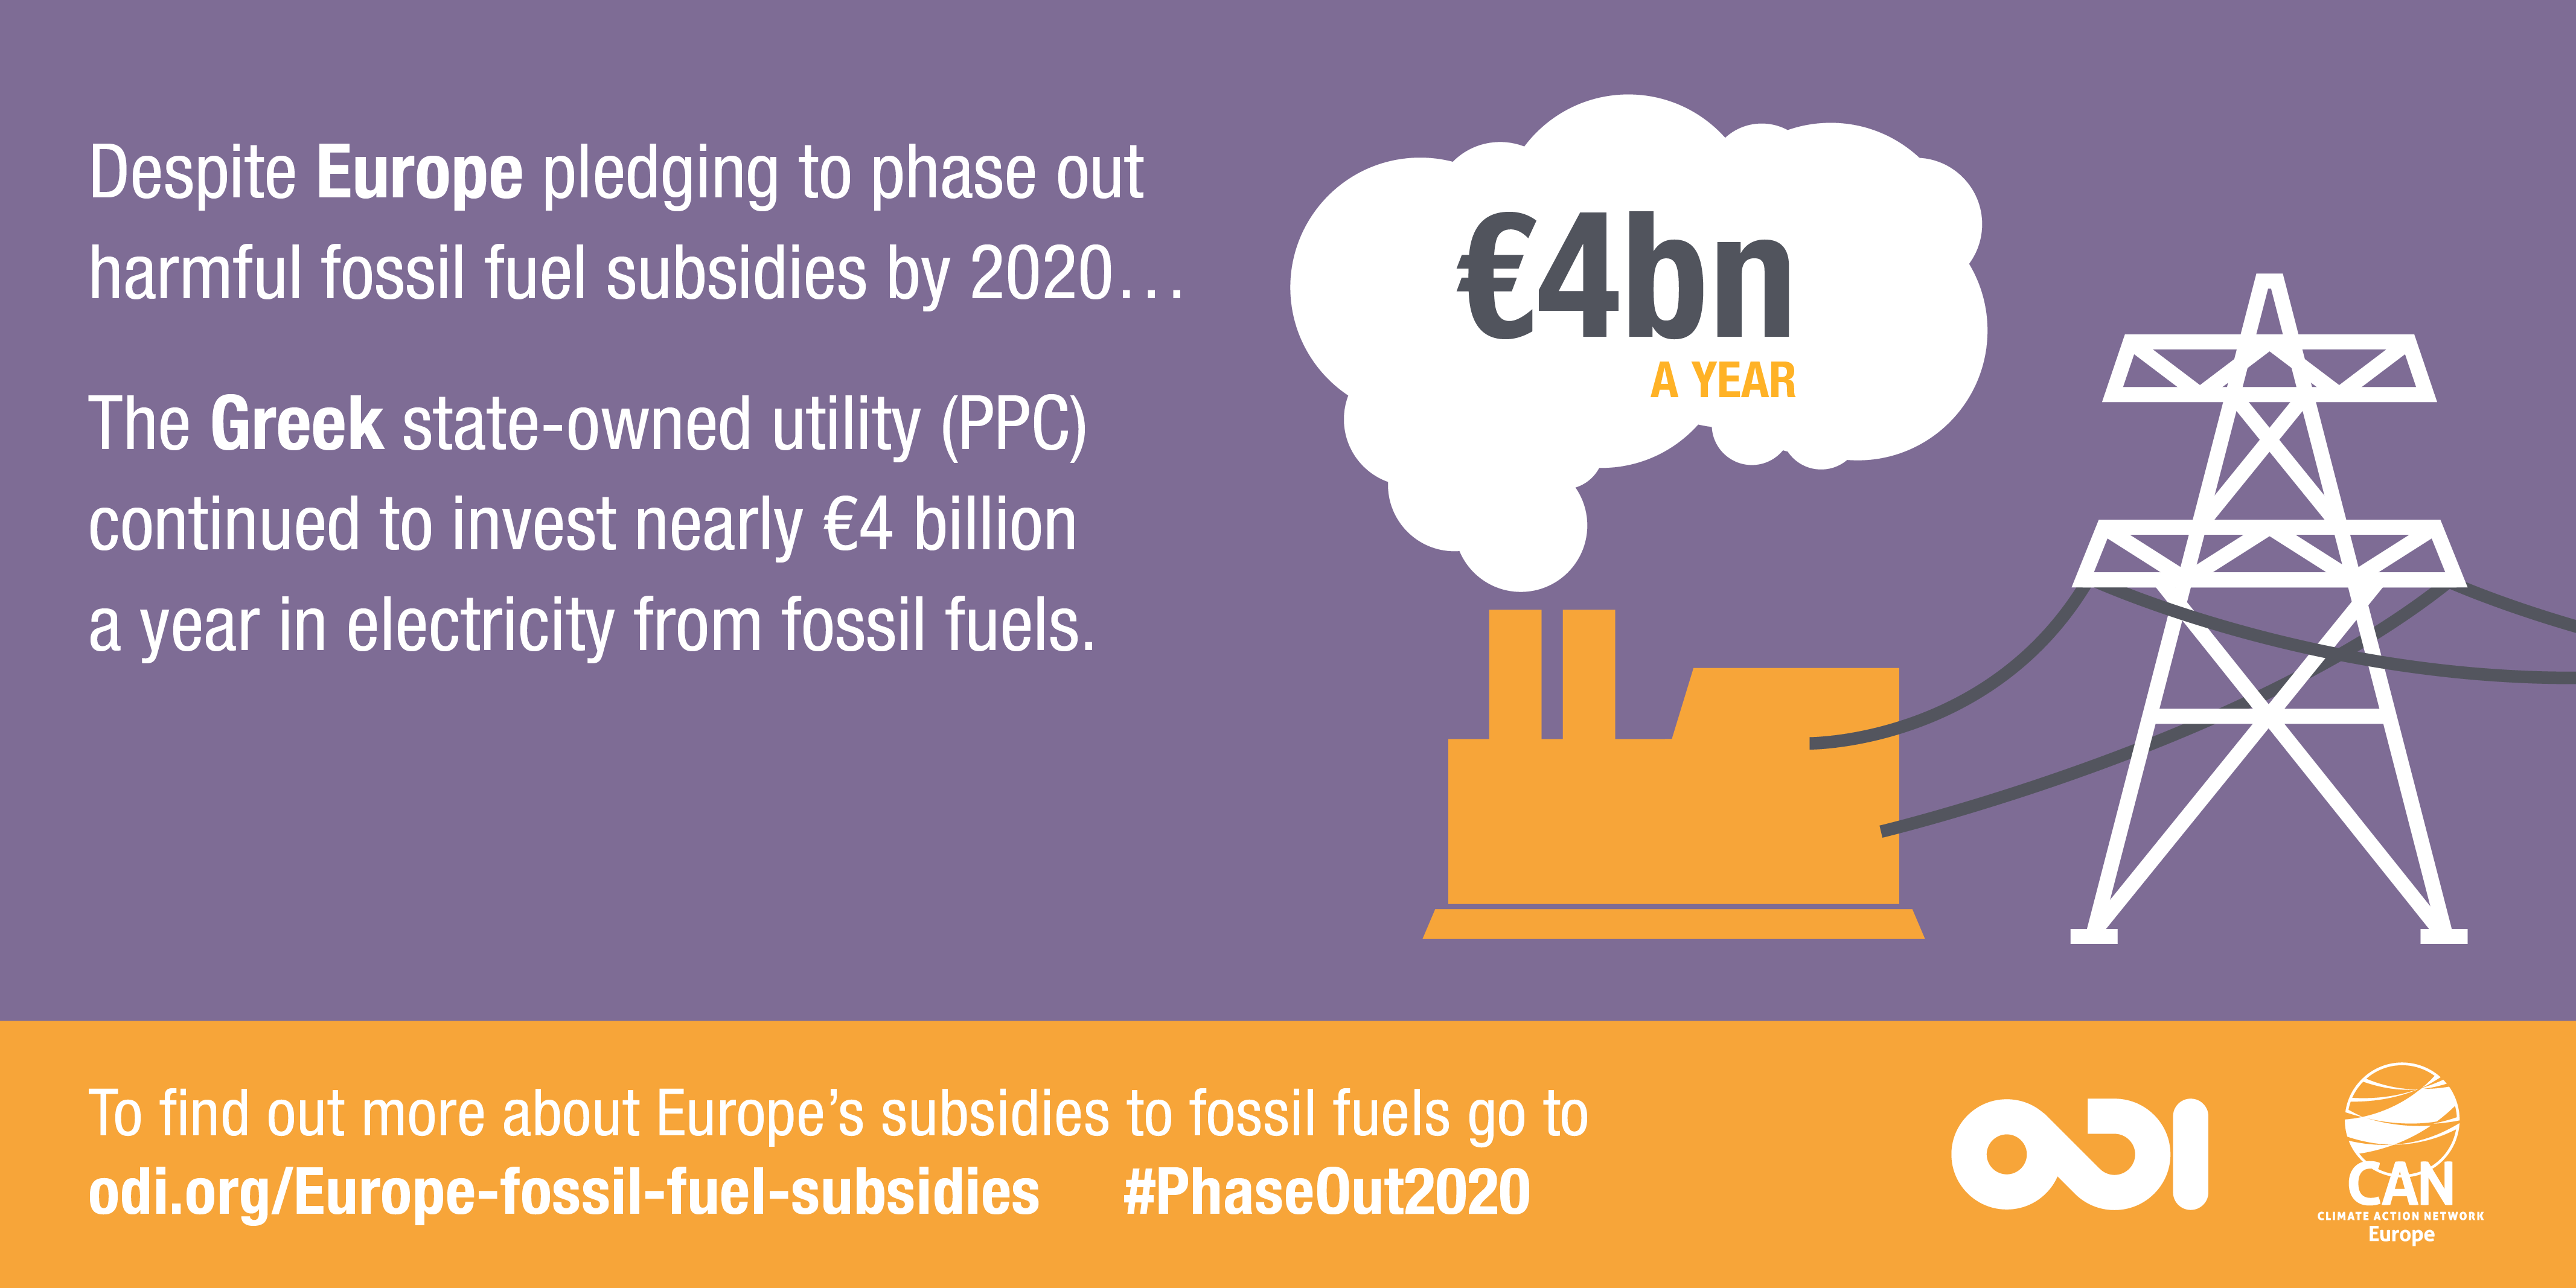 Infographic: The Greek state-owned utility (PPC) continued to invest nearly €4 billion a year in electricity from fossil fuels.